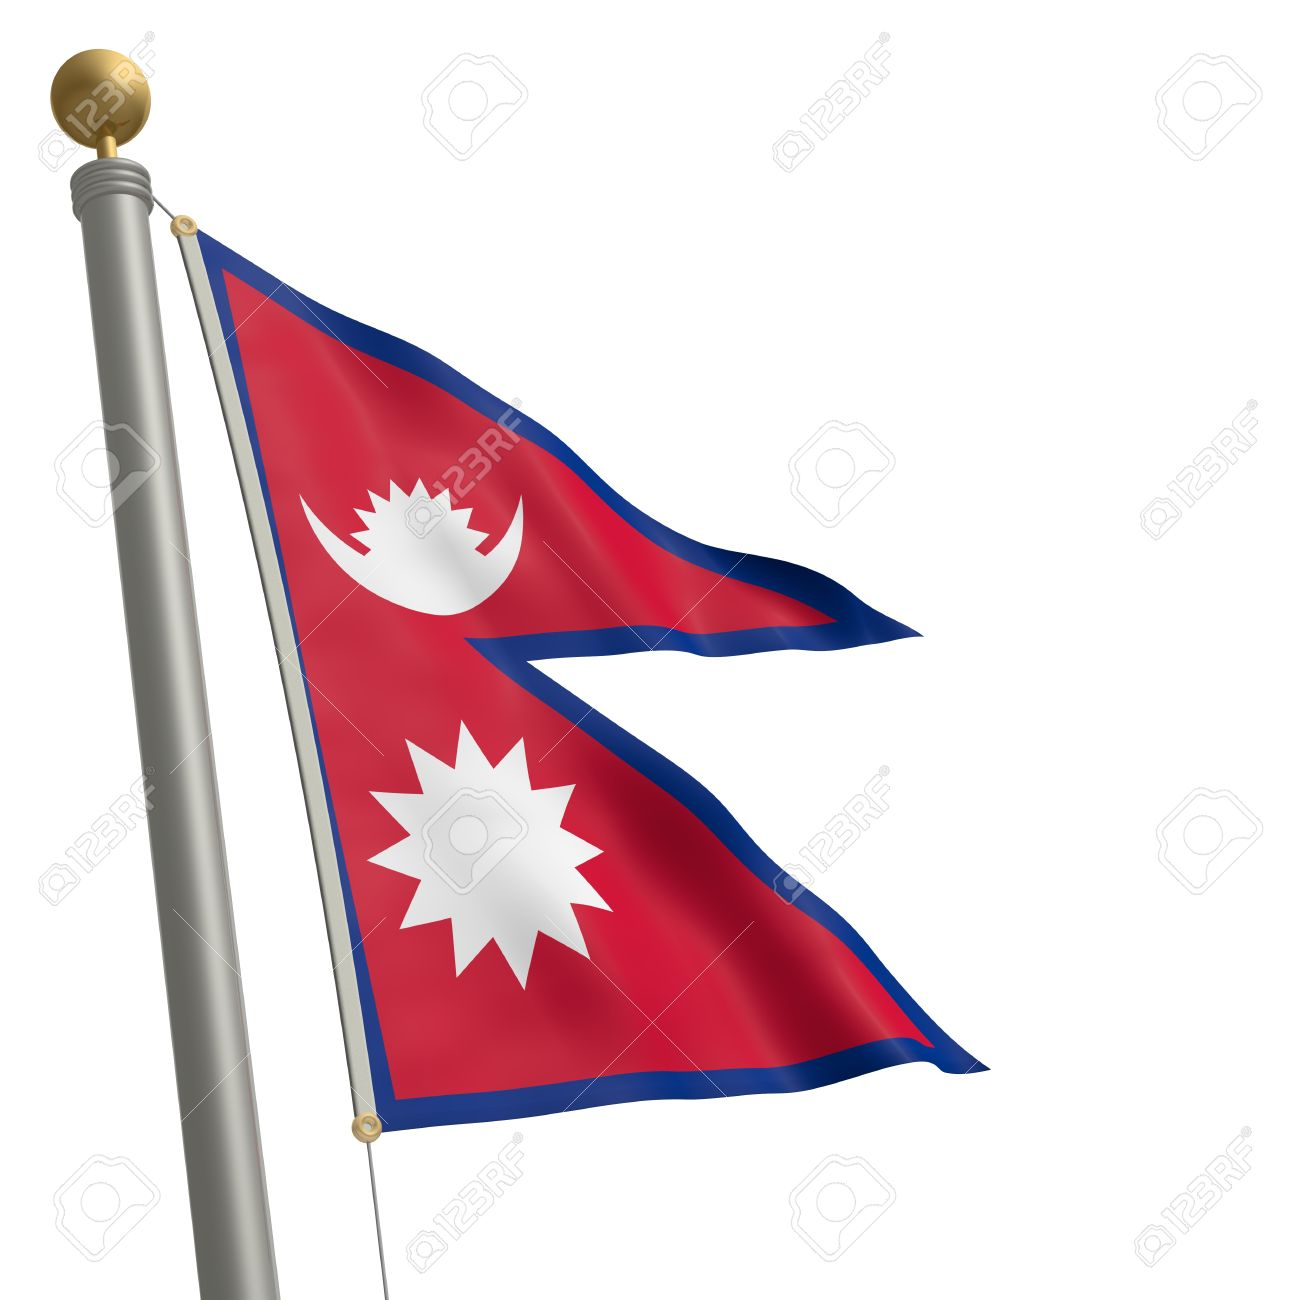 Nepal: Mirage Of Justice